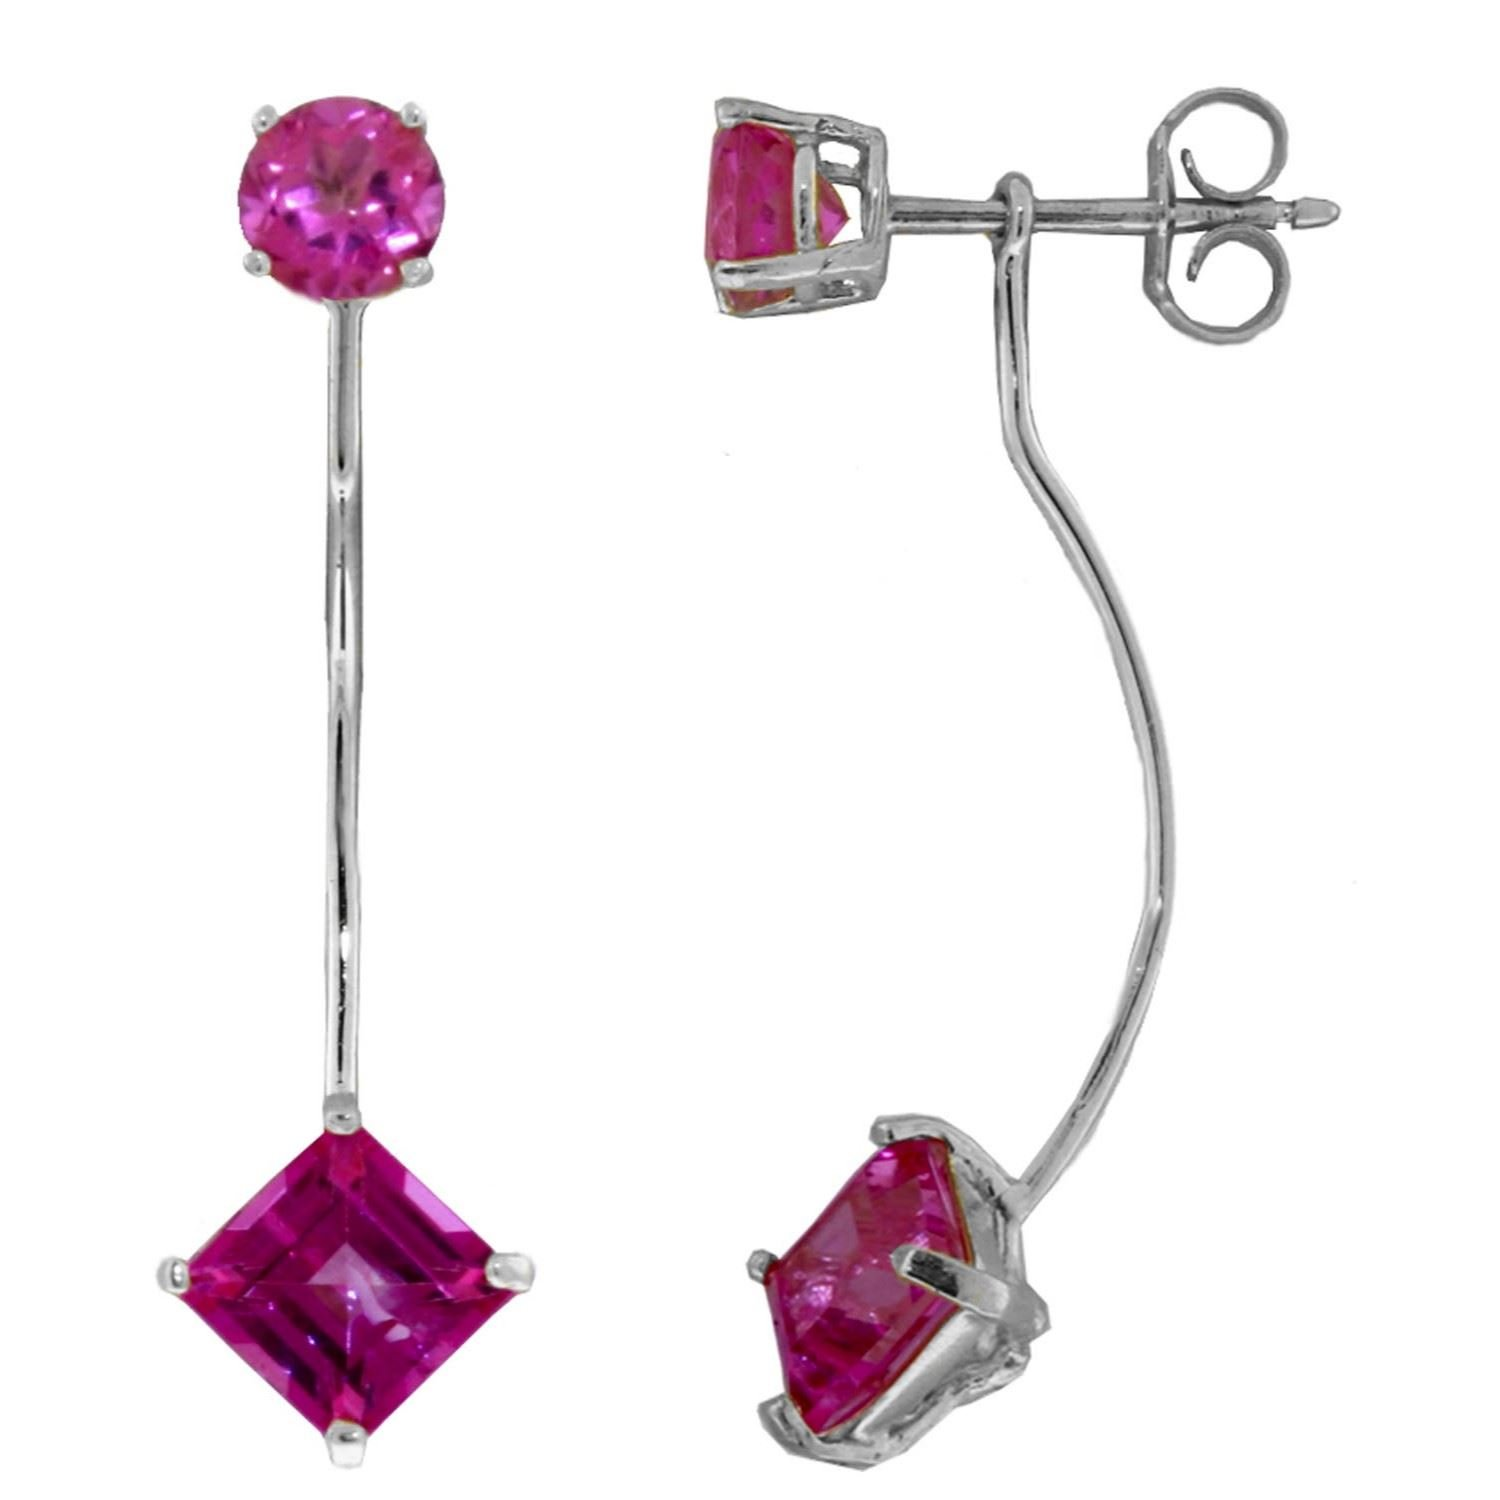 ALARRI 4.15 Carat 14K Solid White Gold Point Of Ecstasy Pink Topaz Earrings